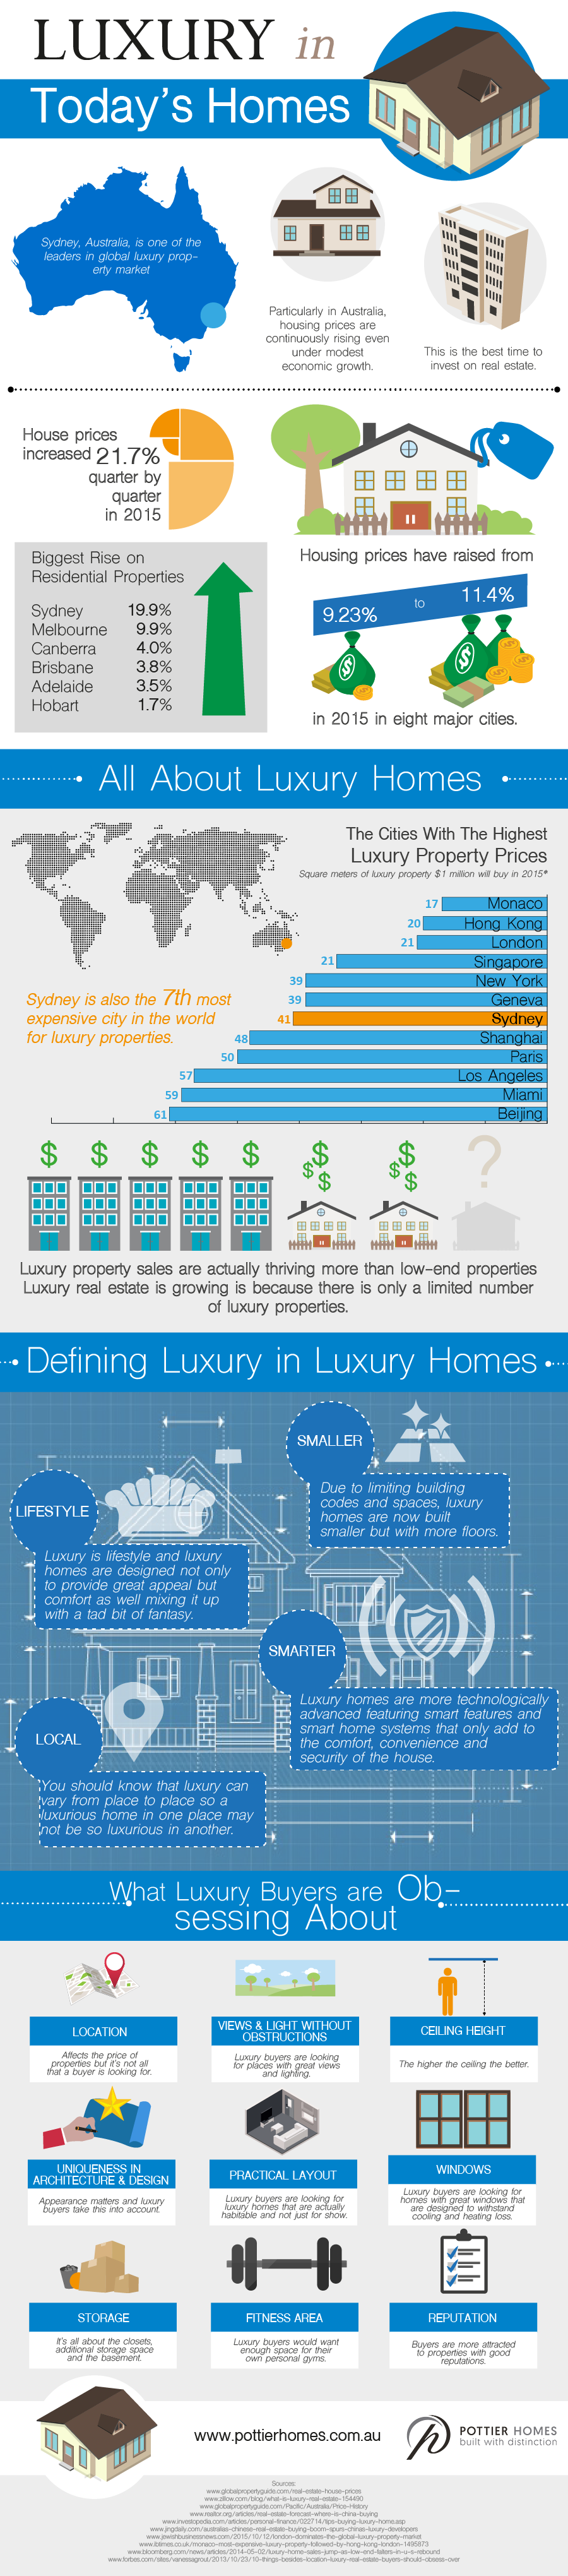 Luxury in Today's Homes